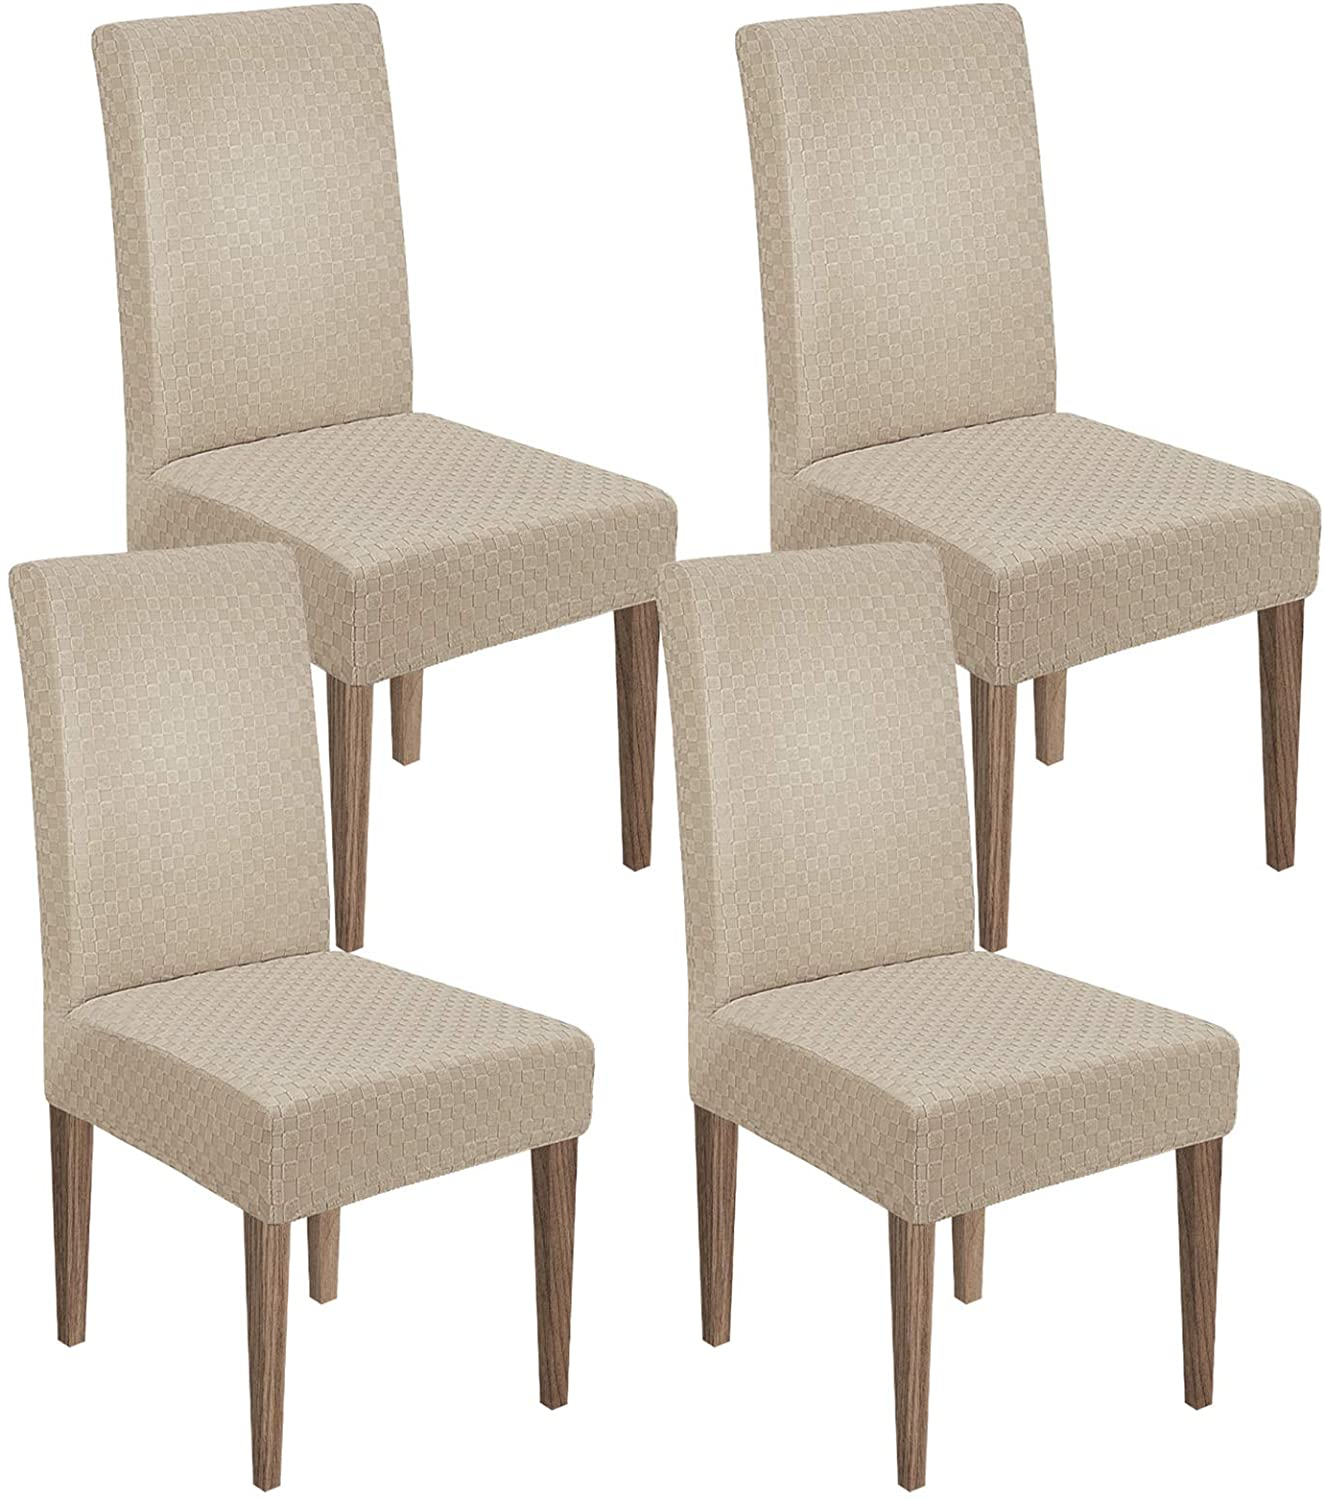 MAXIJIN Newest Jacquard Dining Room Chair Cover 1-Piece Stretch Dining Parsons Chair Slipcover Removable Chair Furniture Protector Covers for Dining Room,Hotel,Kitchen,Ceremony (4, Khaki)